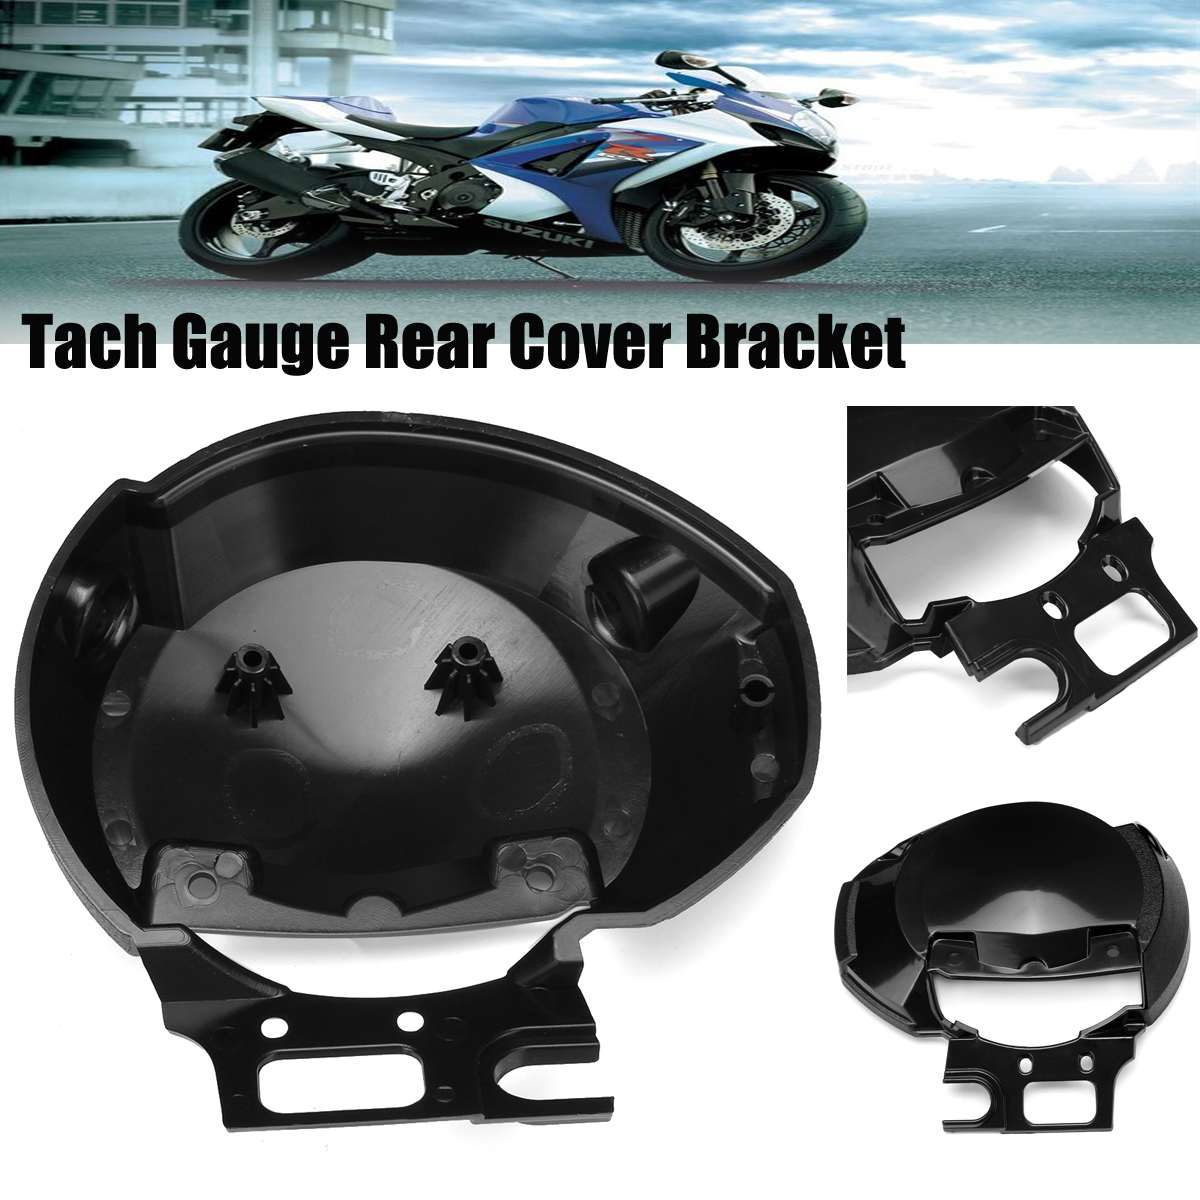 Motorcycle SpeedoMeter Speed Tach Gauge Rear Case Cover Bracket For Yamaha FZ6 N 2004-2007  Instrument Meter Case